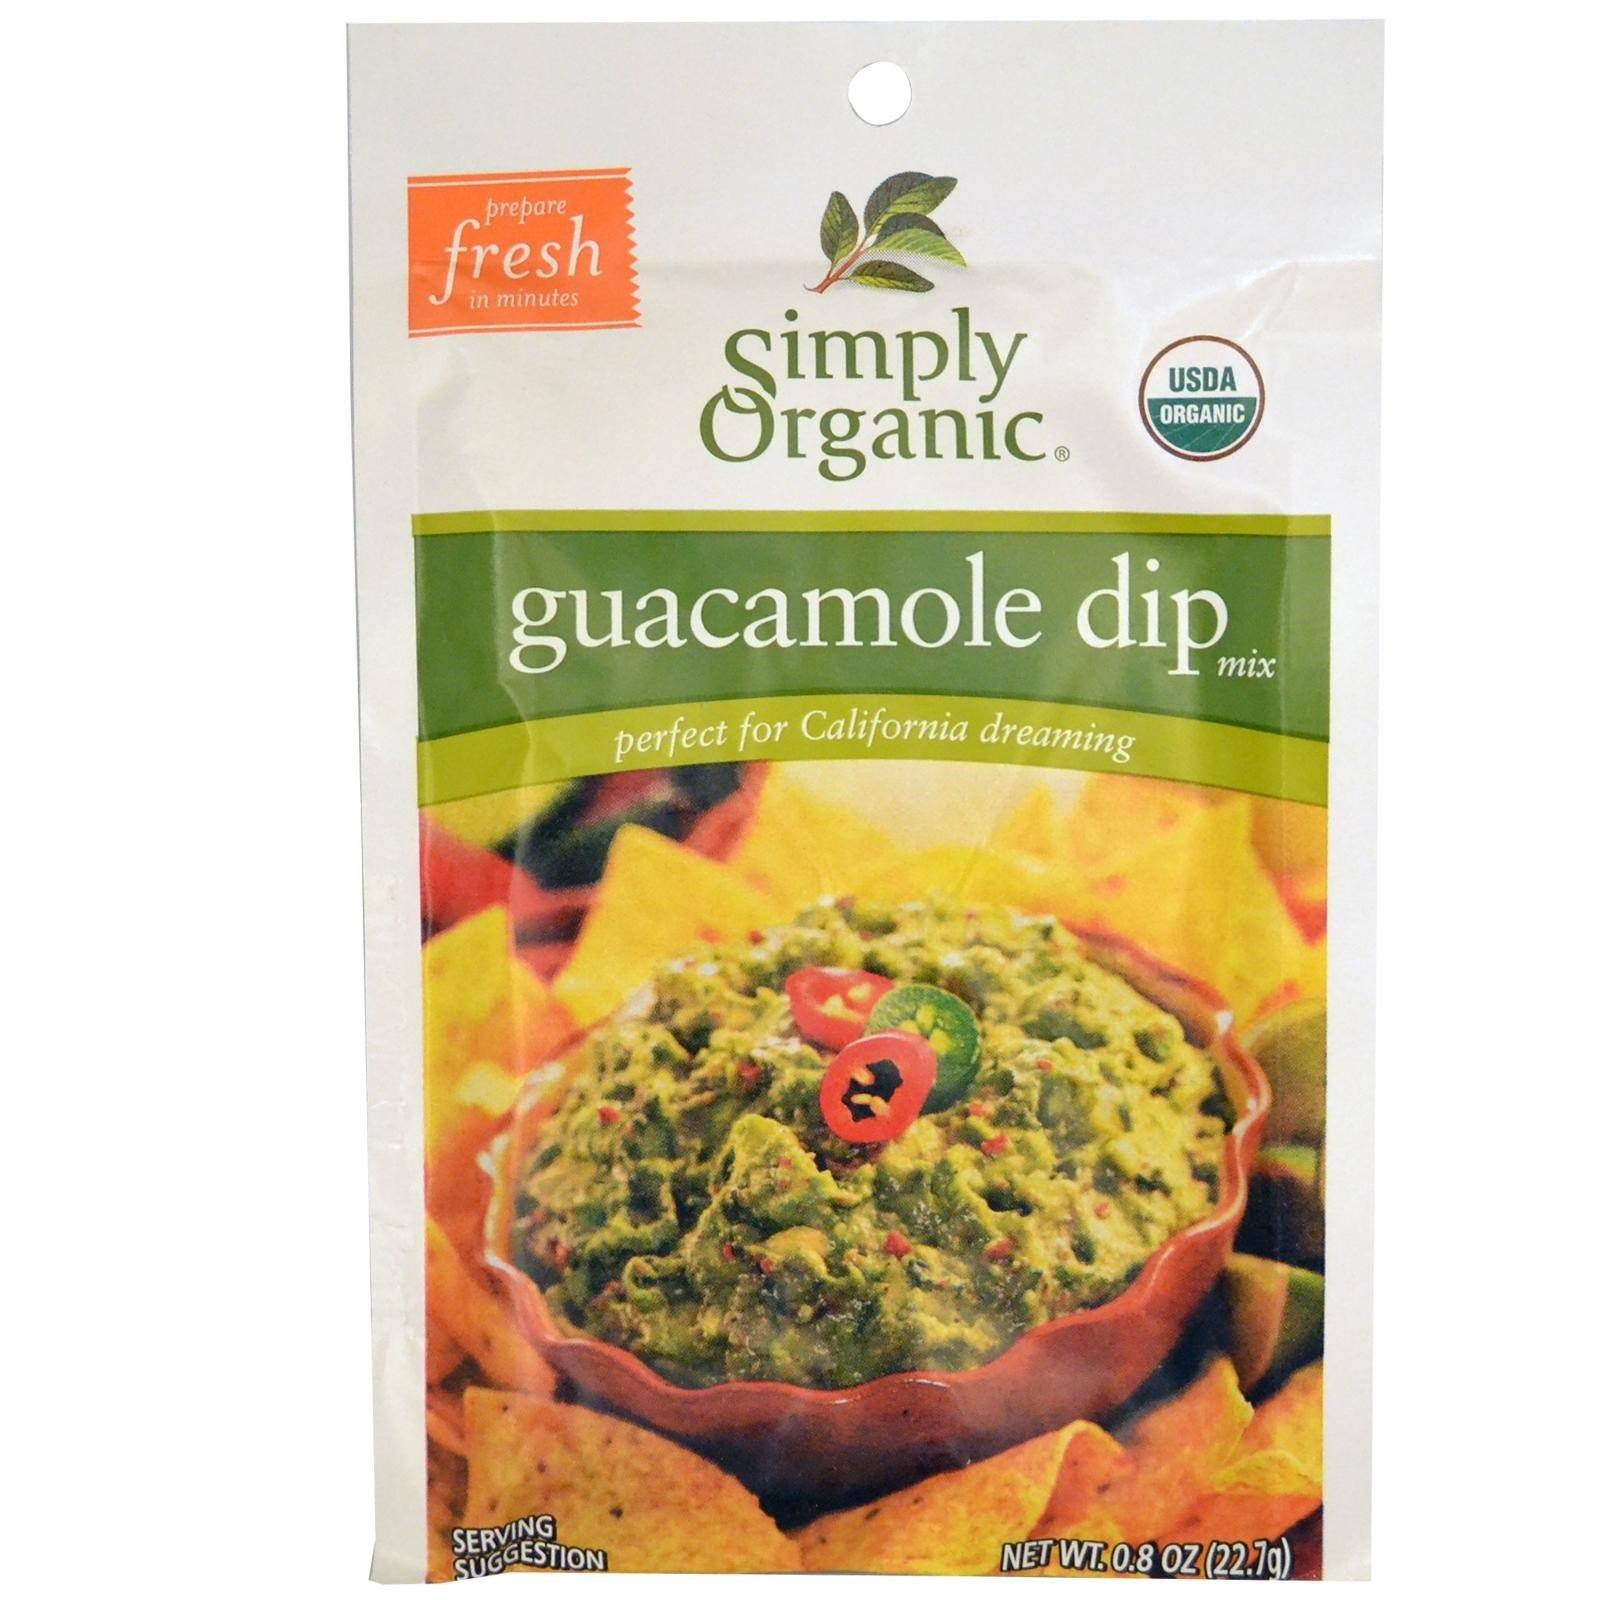 Food & Drink - Simply Organic - Guacamole Dip Mix - 23G